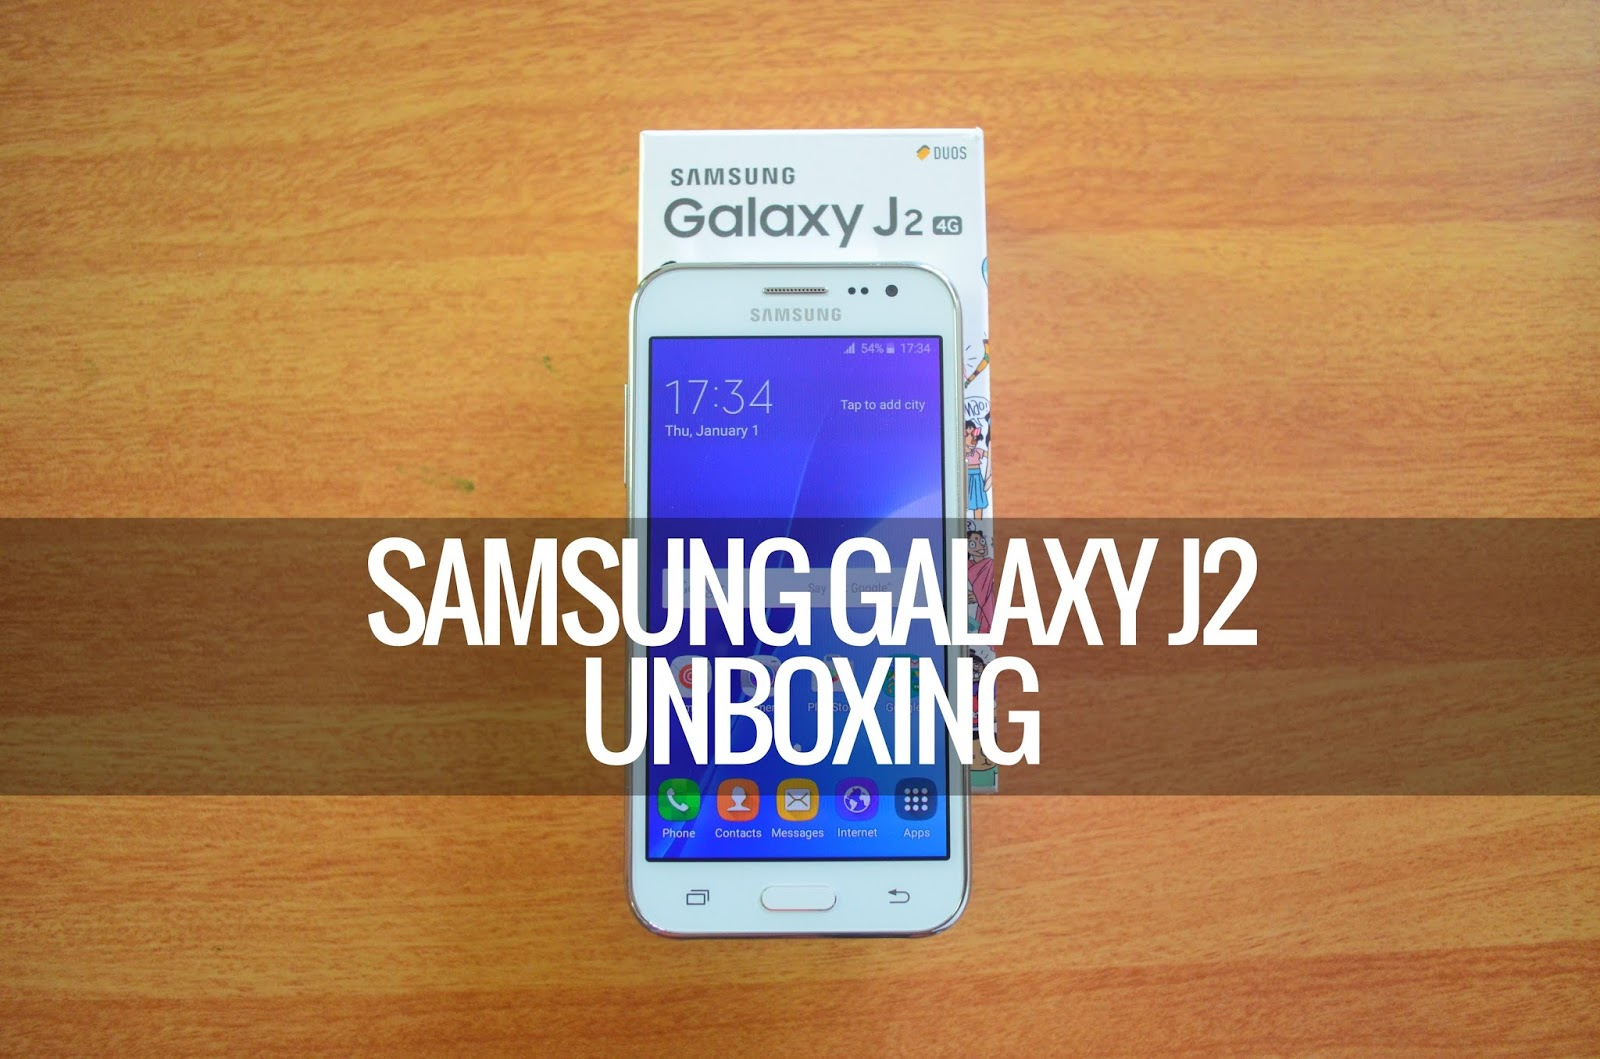 Samsung Galaxy J2: Samsung Galaxy J2 Price, Review, Features